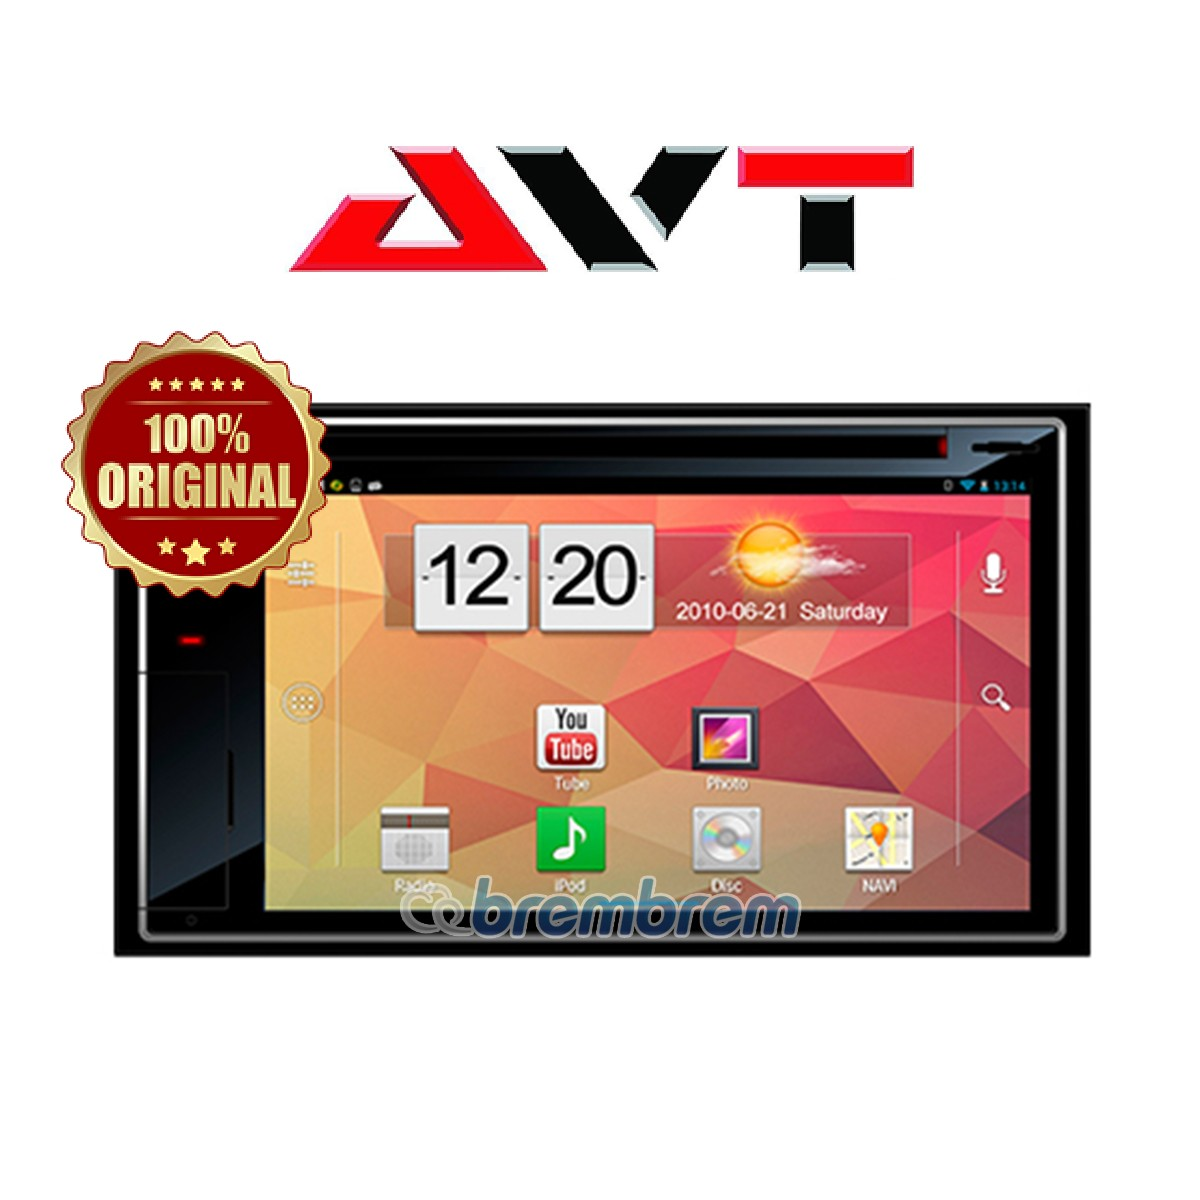 AVT AND 9000 ANDROID - HEADUNIT DOUBLE DIN